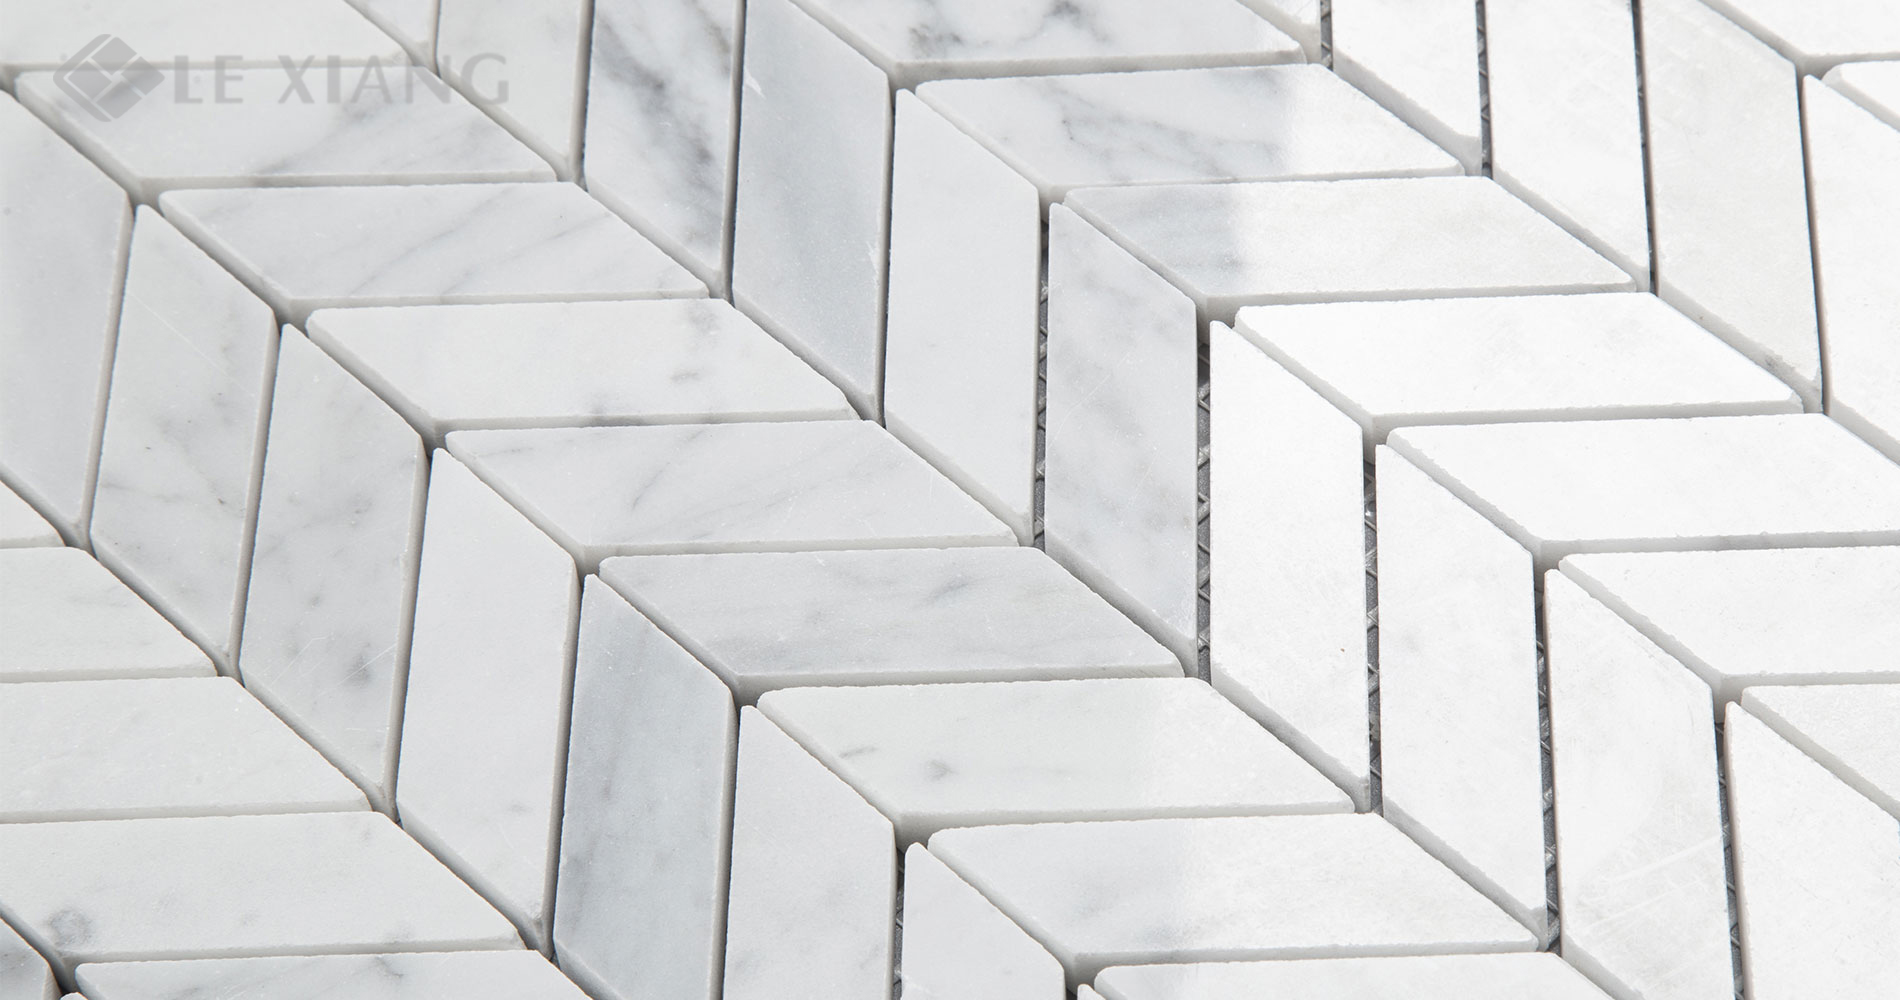 Marble Chevron Mosaic Tile For Kitchen Backsplash And Bathroom Wall ...